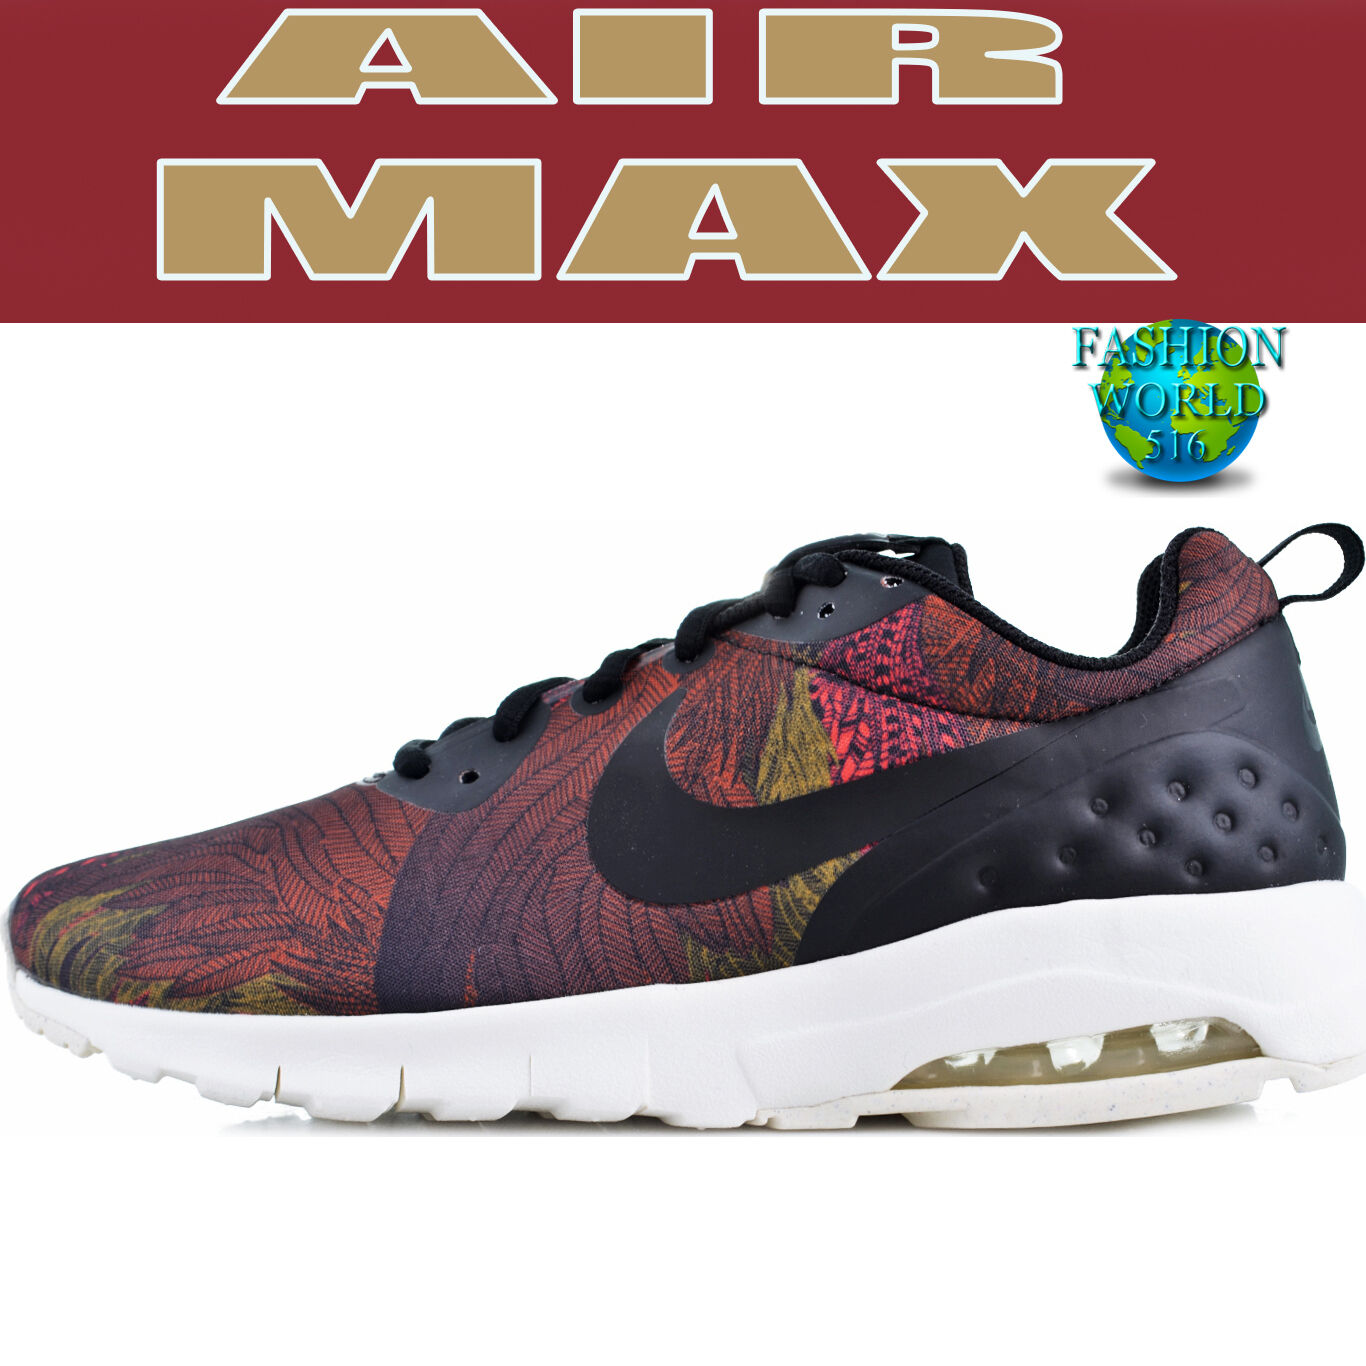 Nike Women's Size 7 Air Max Motion Low Running Sneakers 844890-003 Multi Color